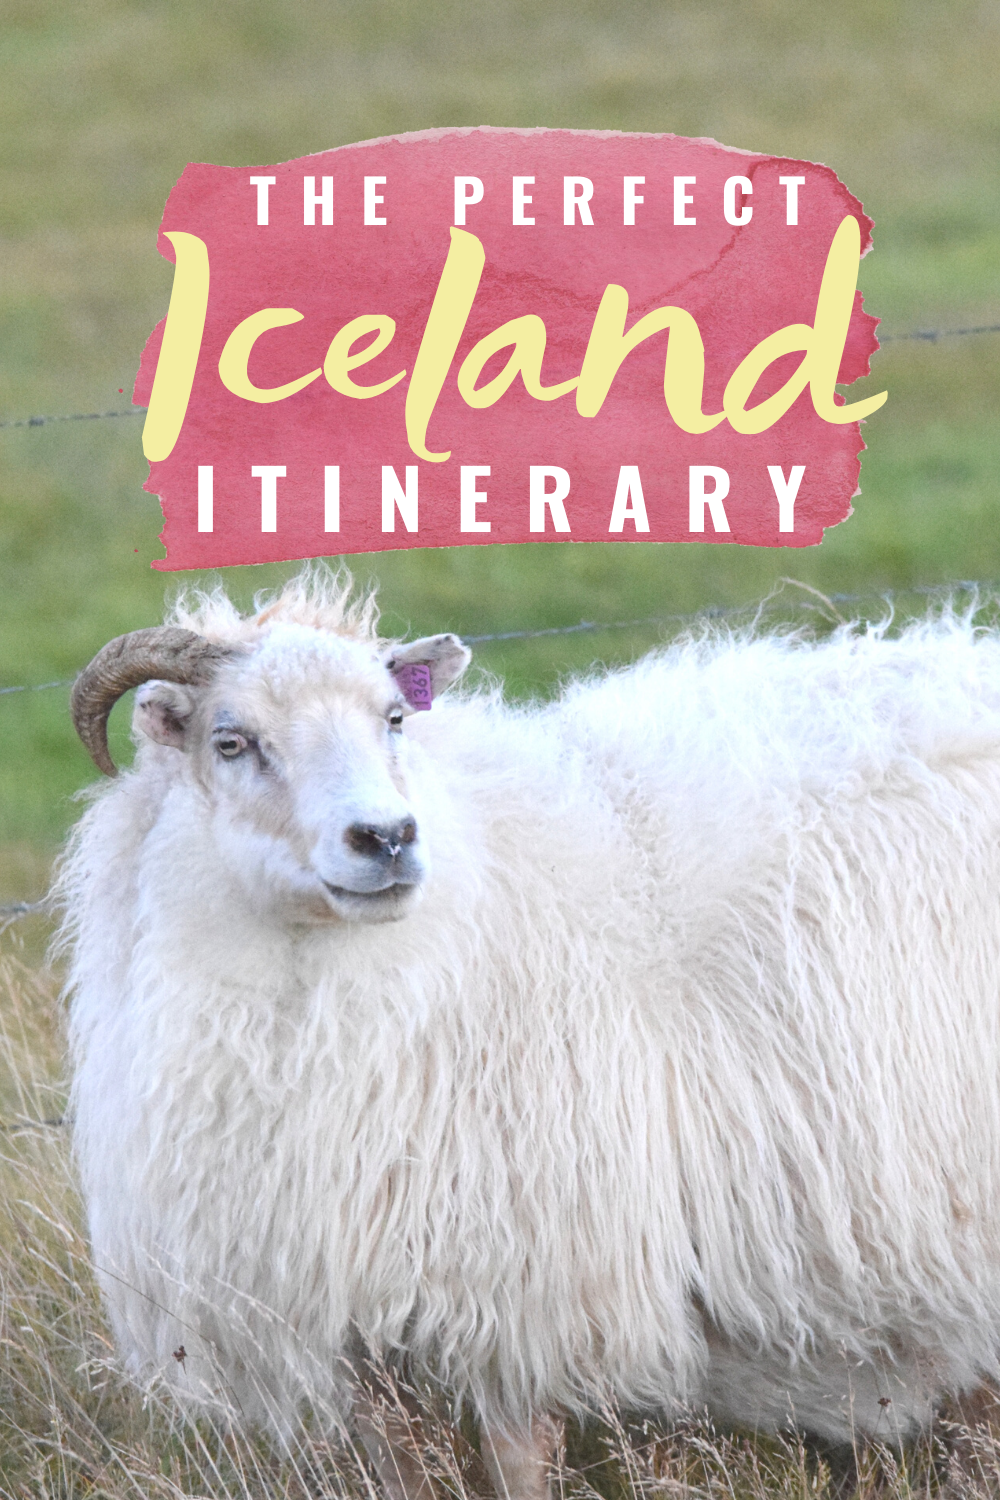 The Perfect Iceland Itinerary - Sharing how we spent our time in Iceland, as well as a brief overview of our trip! | Itinerary + Overview Of Our Iceland Vacation - Iceland Travel - Reykjavik Travel Itinerary - Iceland Vacation Planning - What to do in Iceland - Iceland Trip - What to do in Iceland - Travel Blog - Travel Itinerary for Iceland